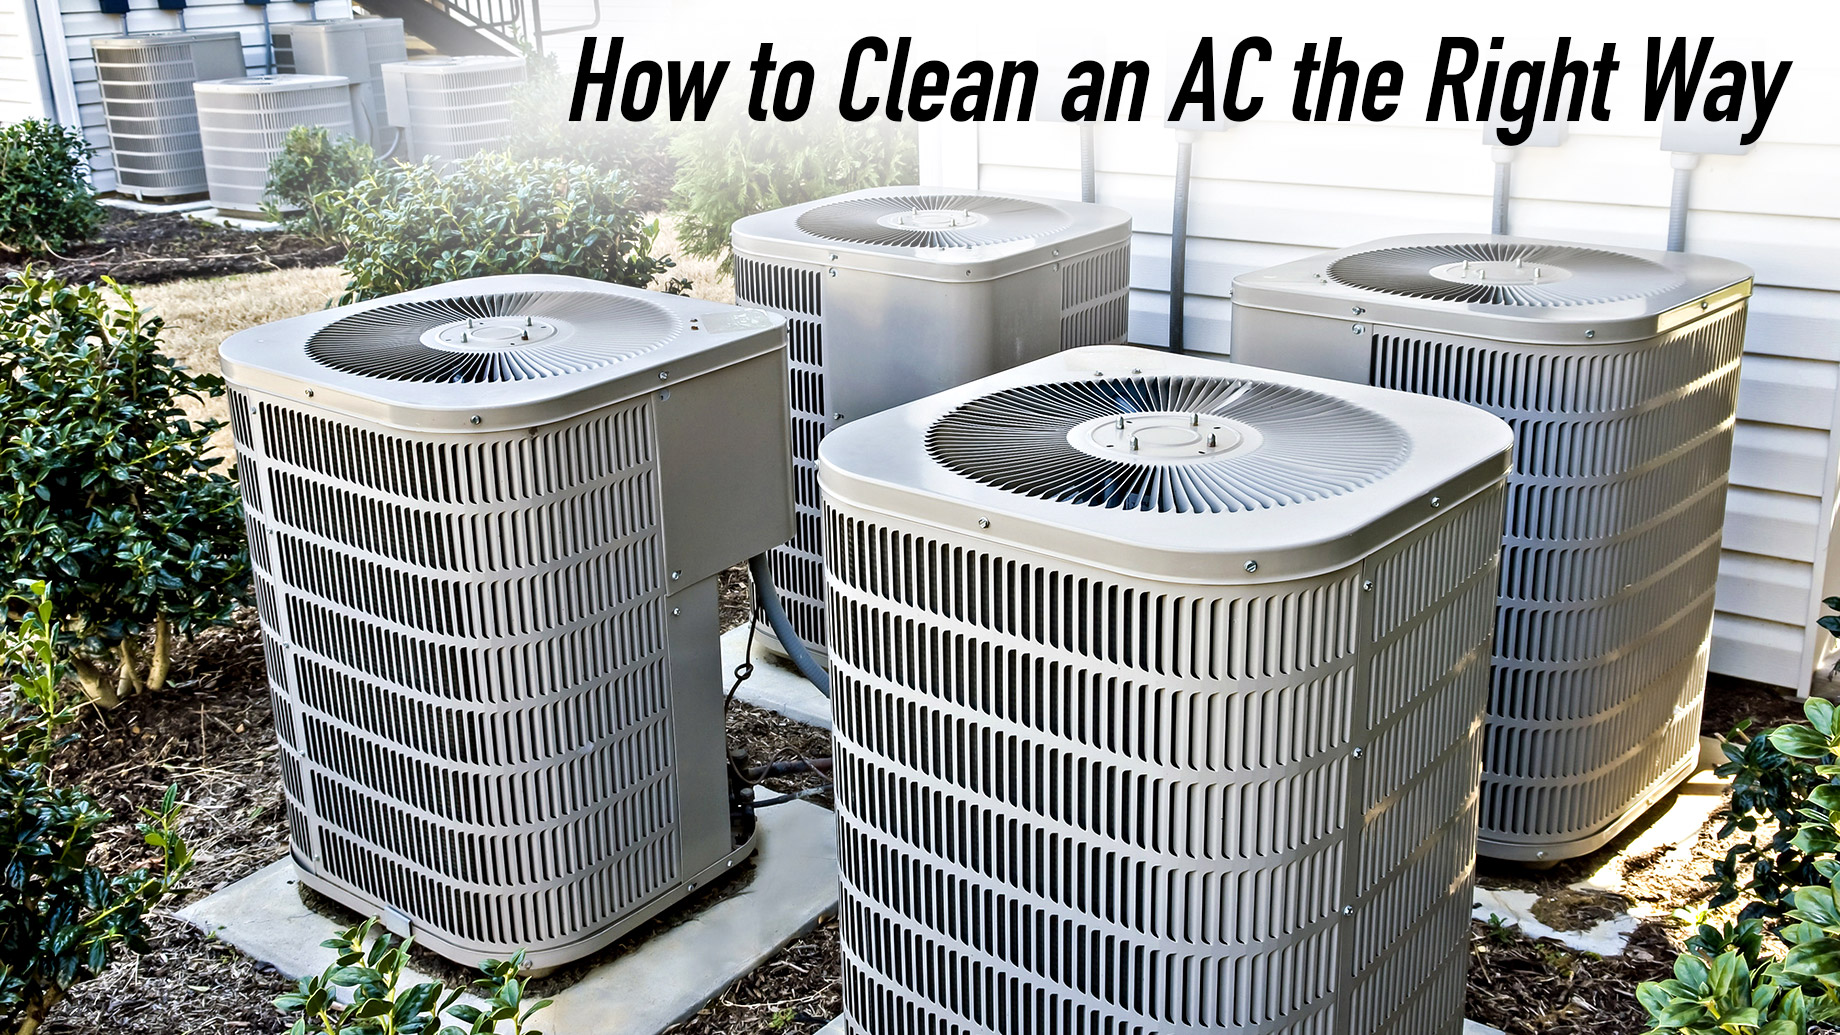 Keep Cool - How to Clean an AC the Right Way